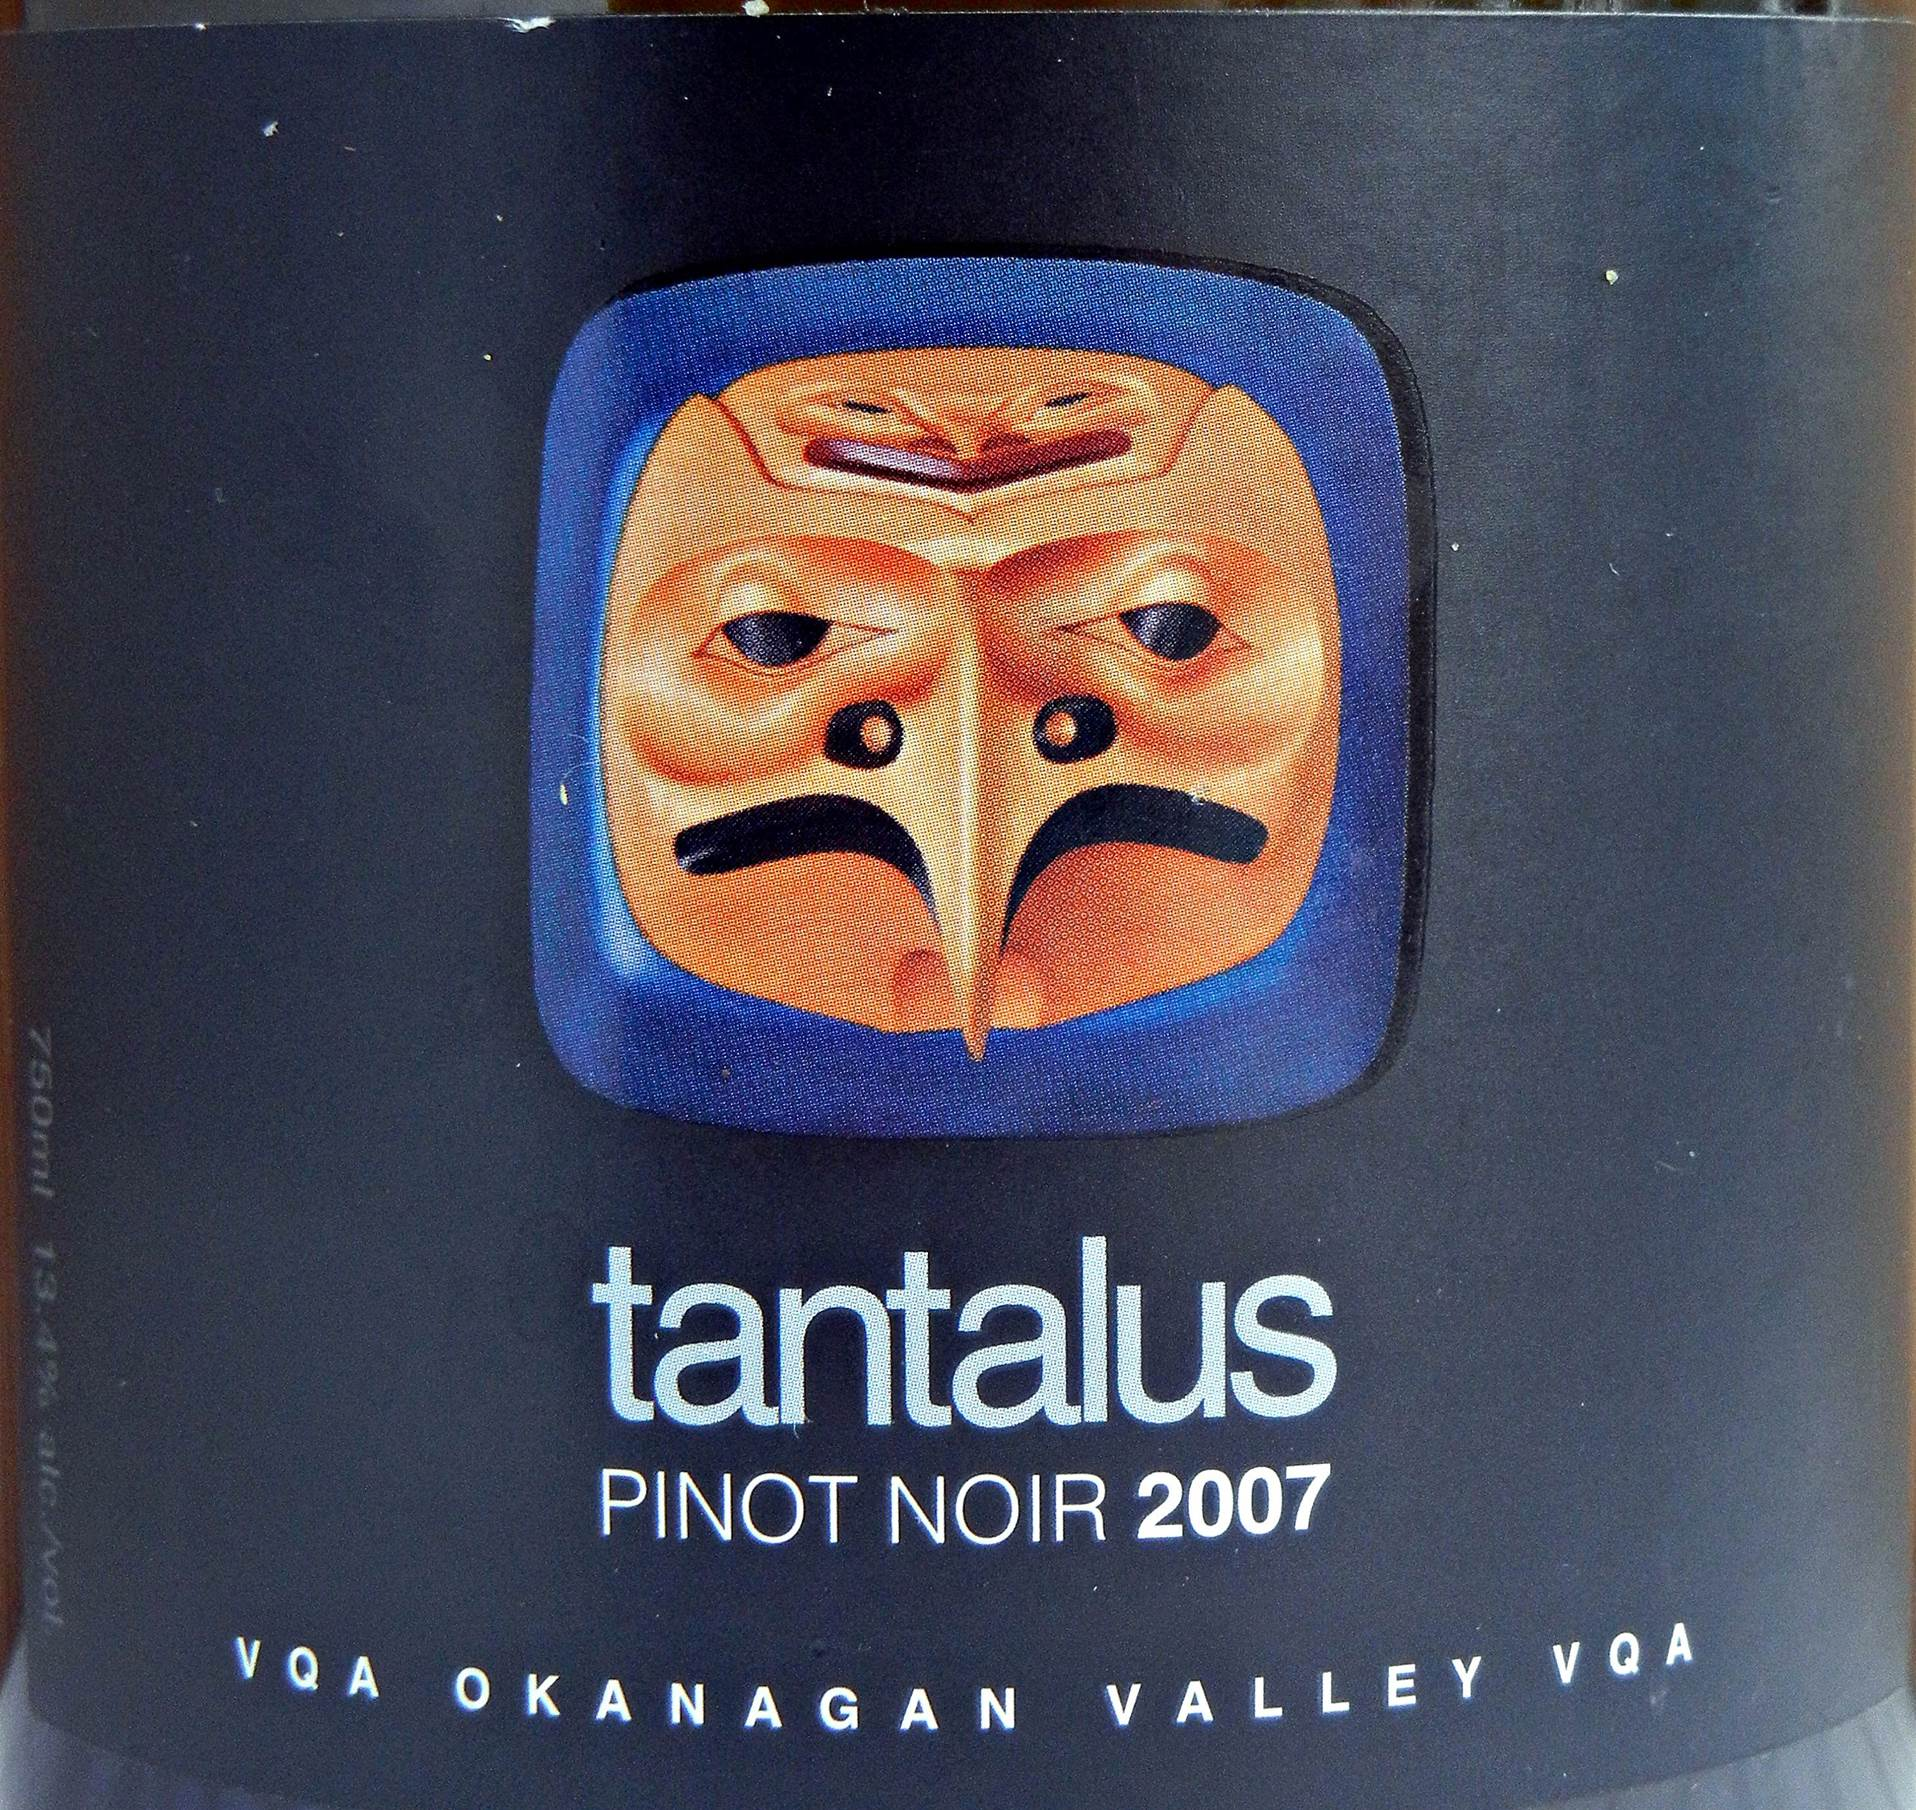 Tantalus Pinot Noir 2007 Label - BC Pinot Noir Tasting Review 23